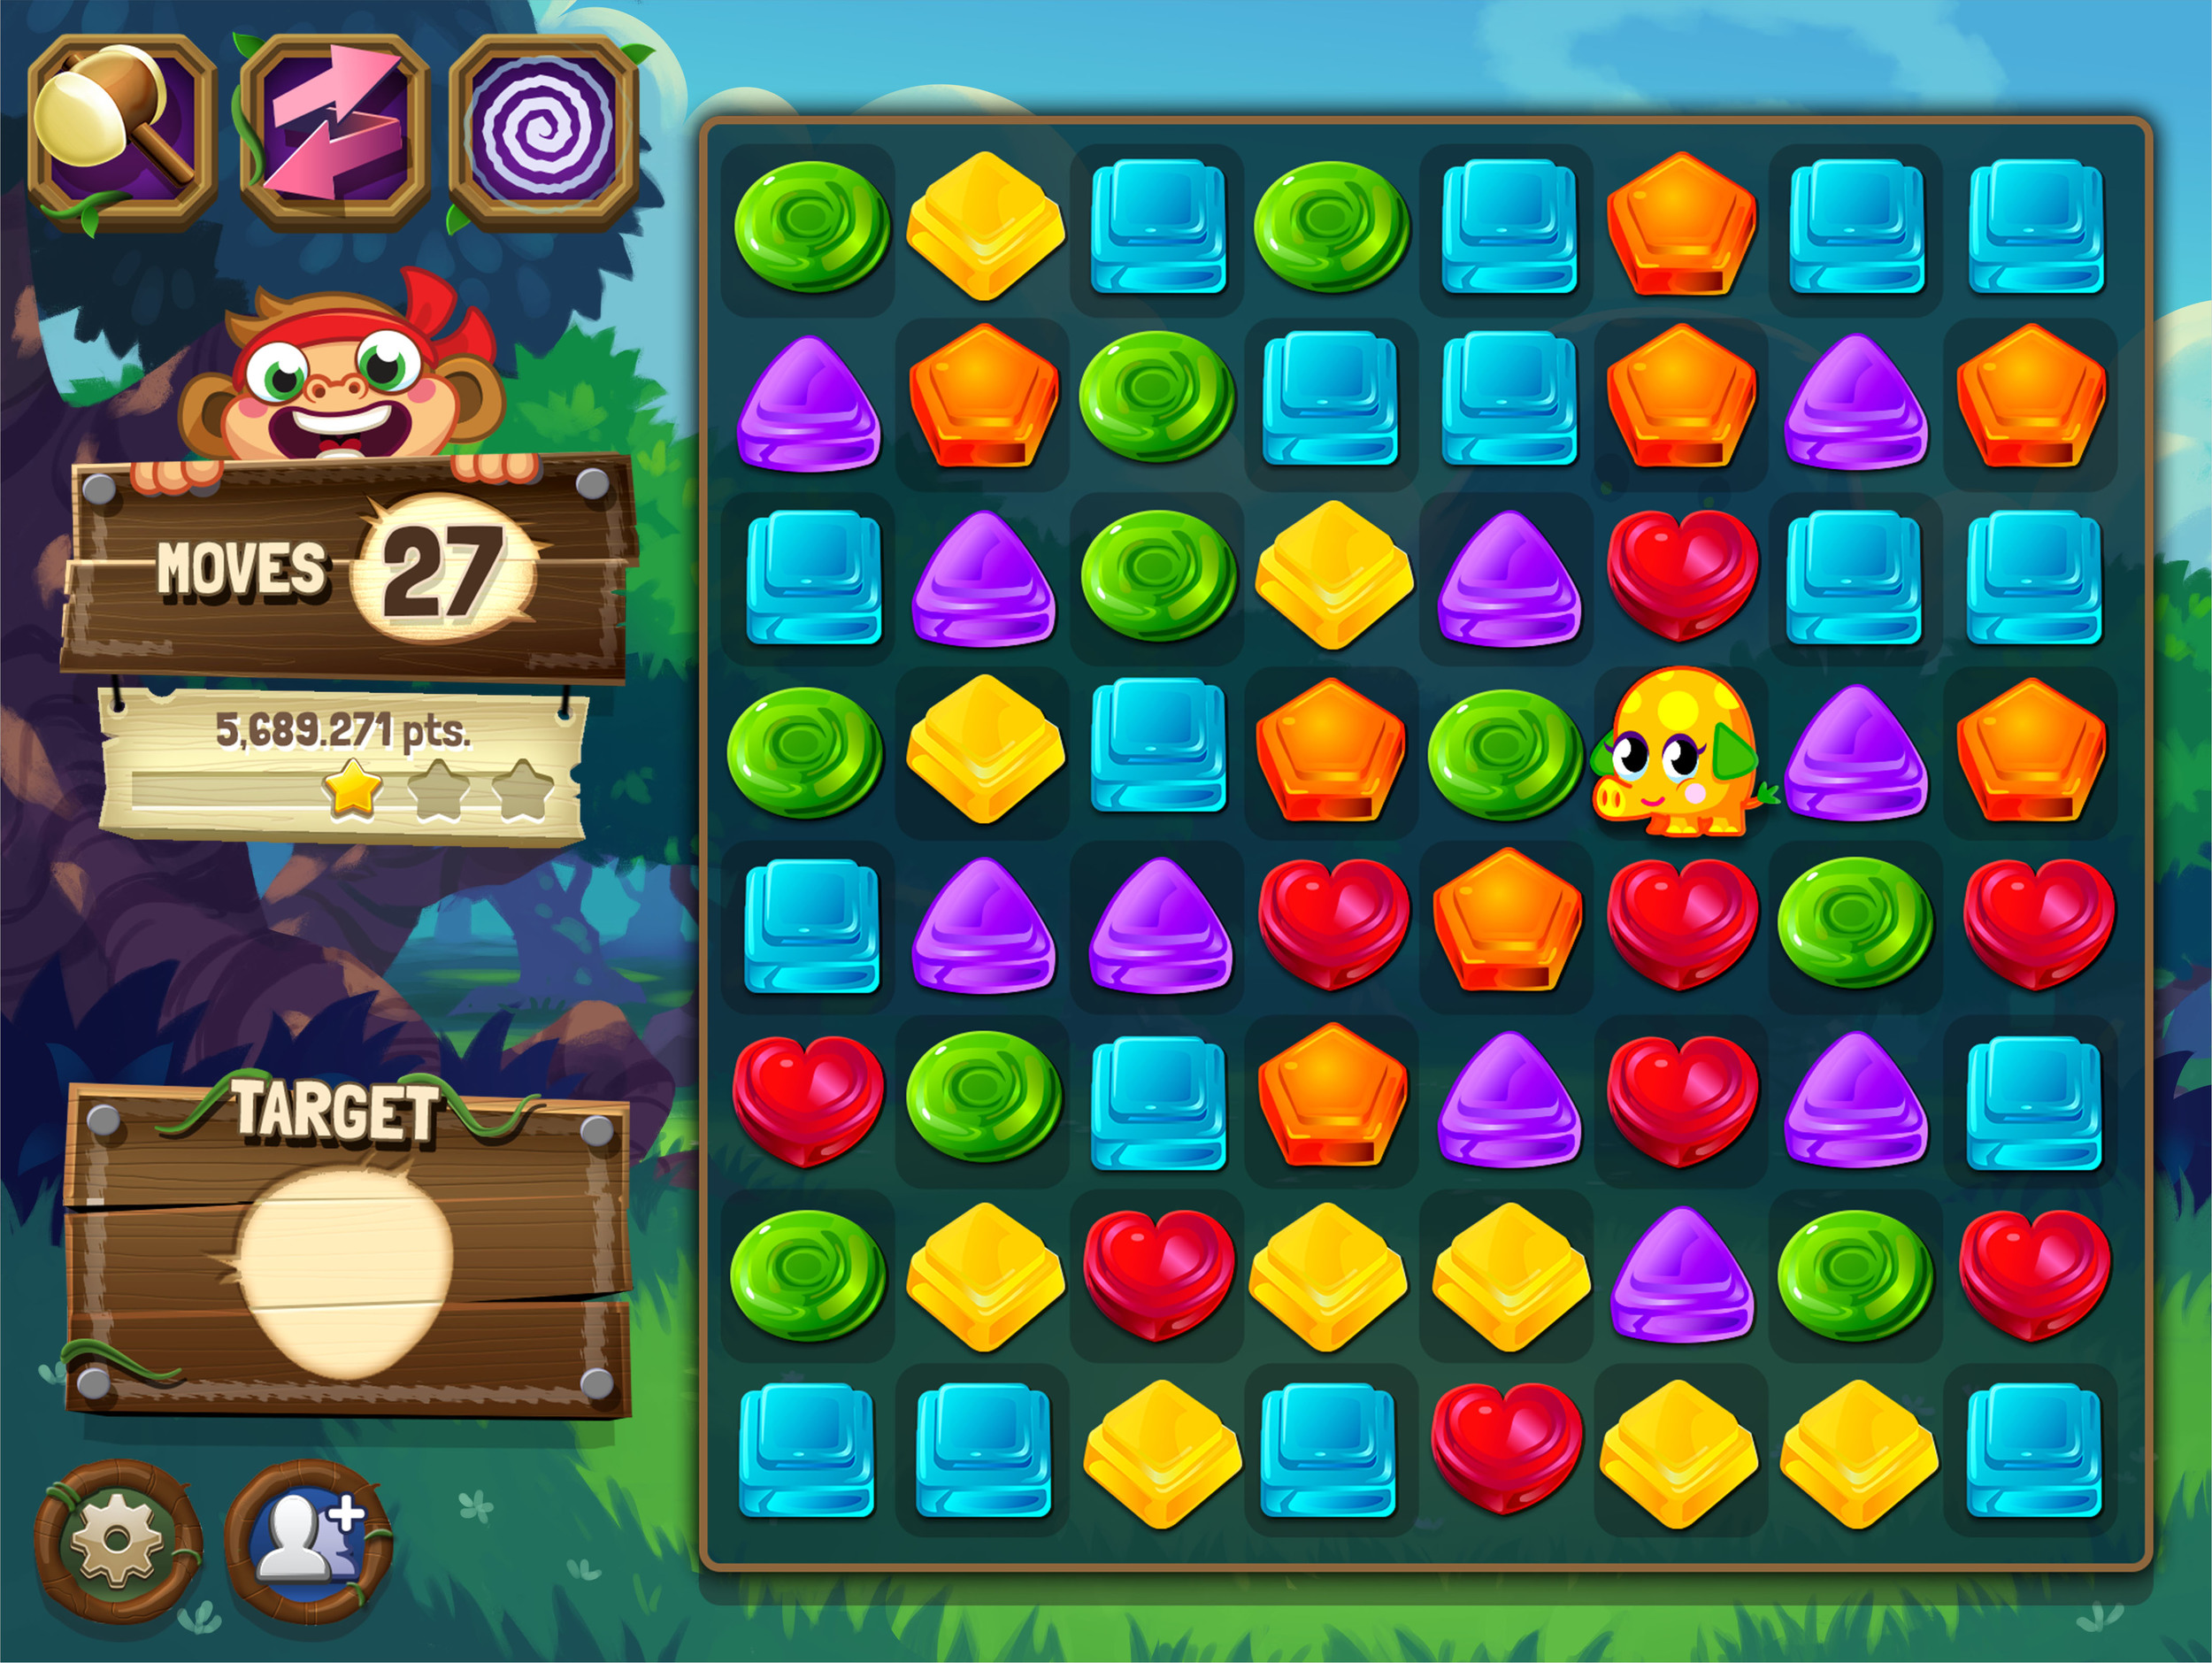 Game screen with UI elements. (UI & game pieces by Ram Kanda)